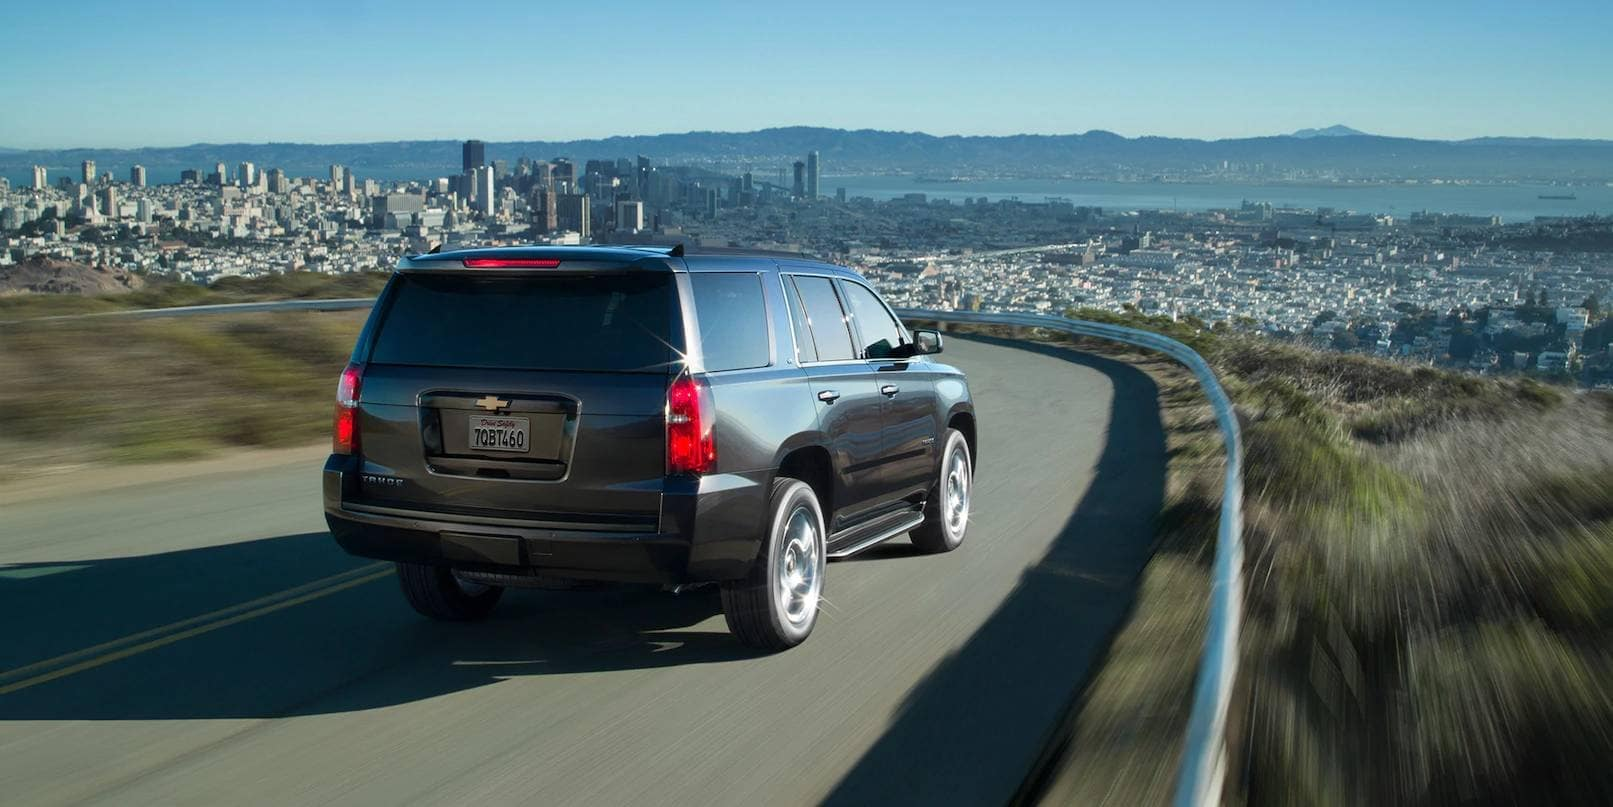 2019 Chevrolet Tahoe Exterior Driving on Highway